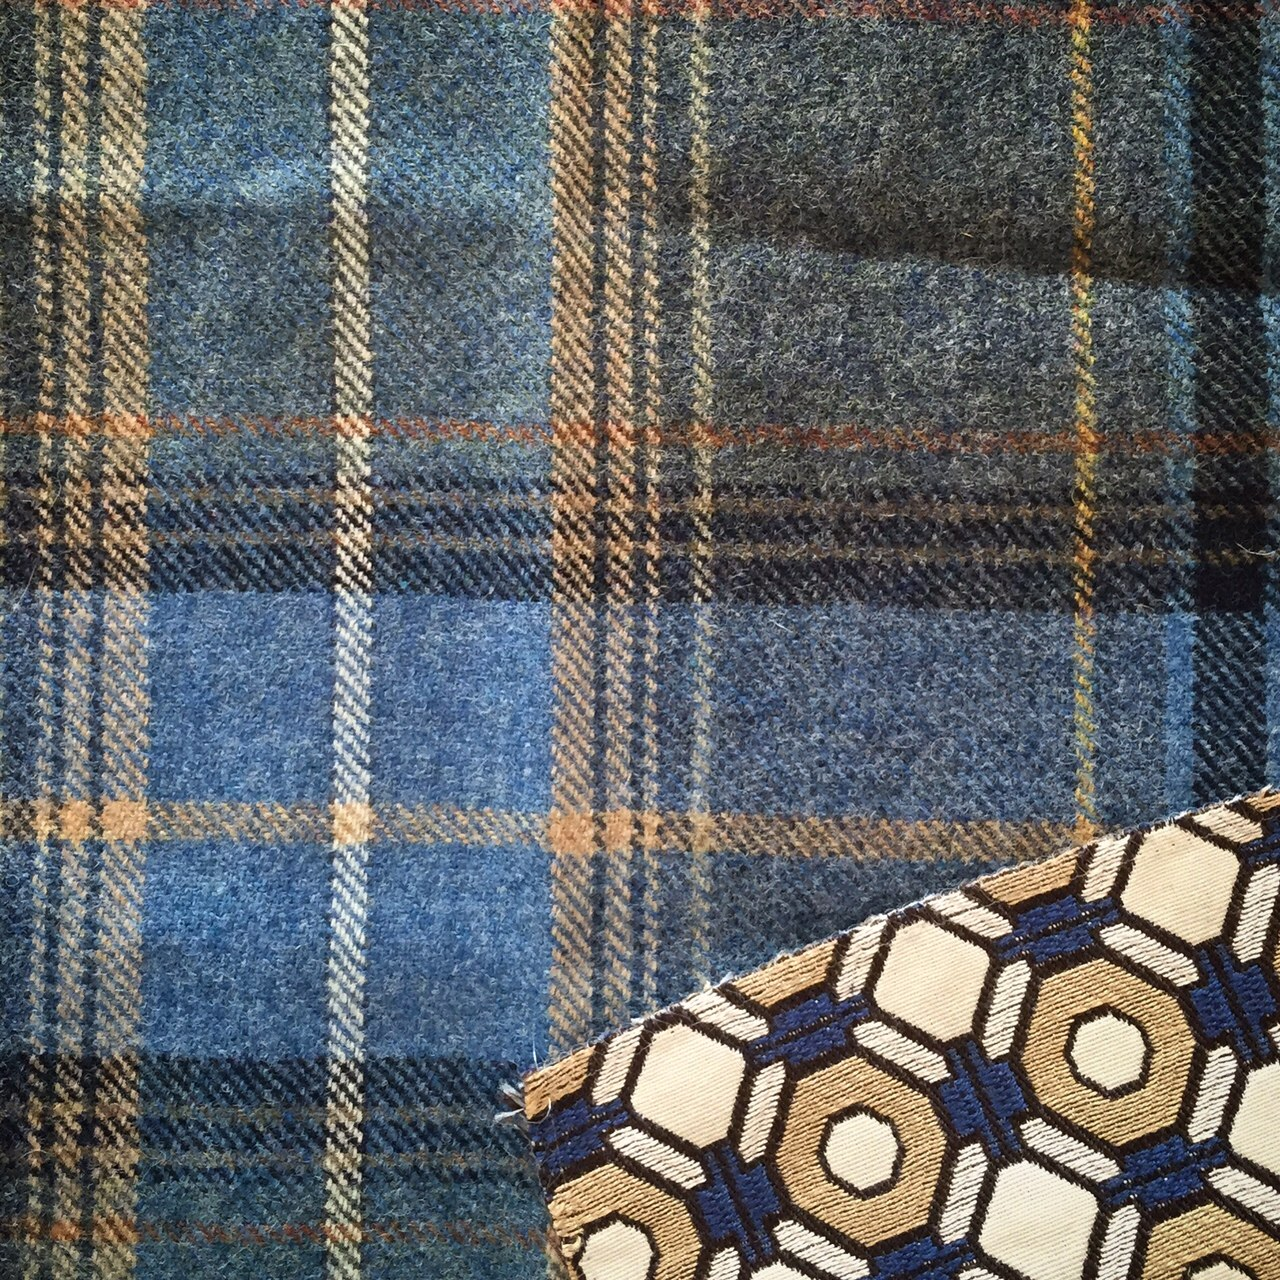 One Room Challenge Fall 2015, Week 2 - Fabrics | Kelly Rogers Interiors | Interiors for Families